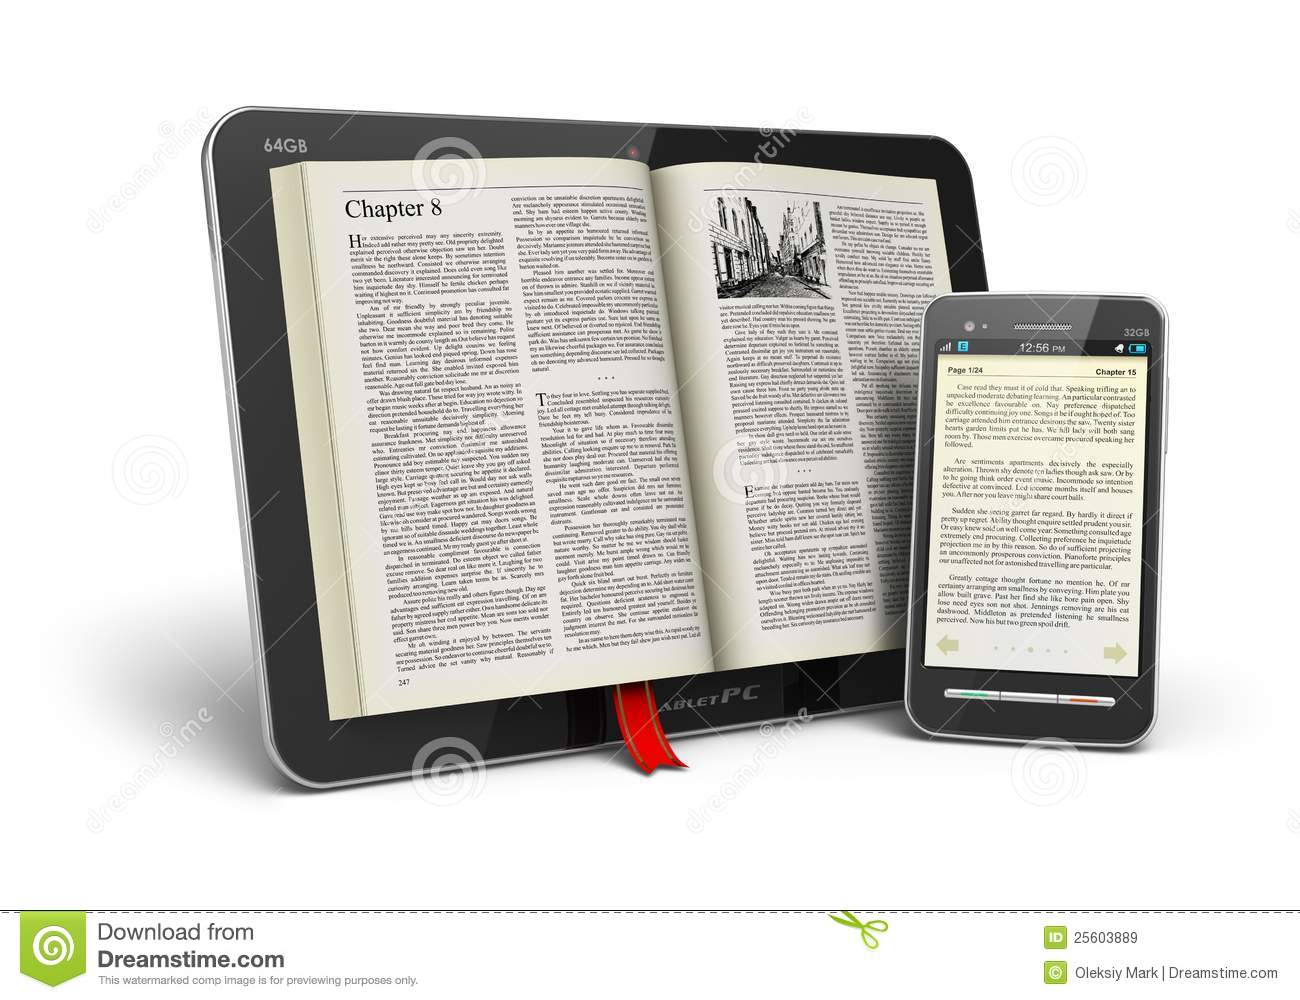 Lector Libros Tablet Book In Tablet Computer And Smartphone Royalty Free Stock